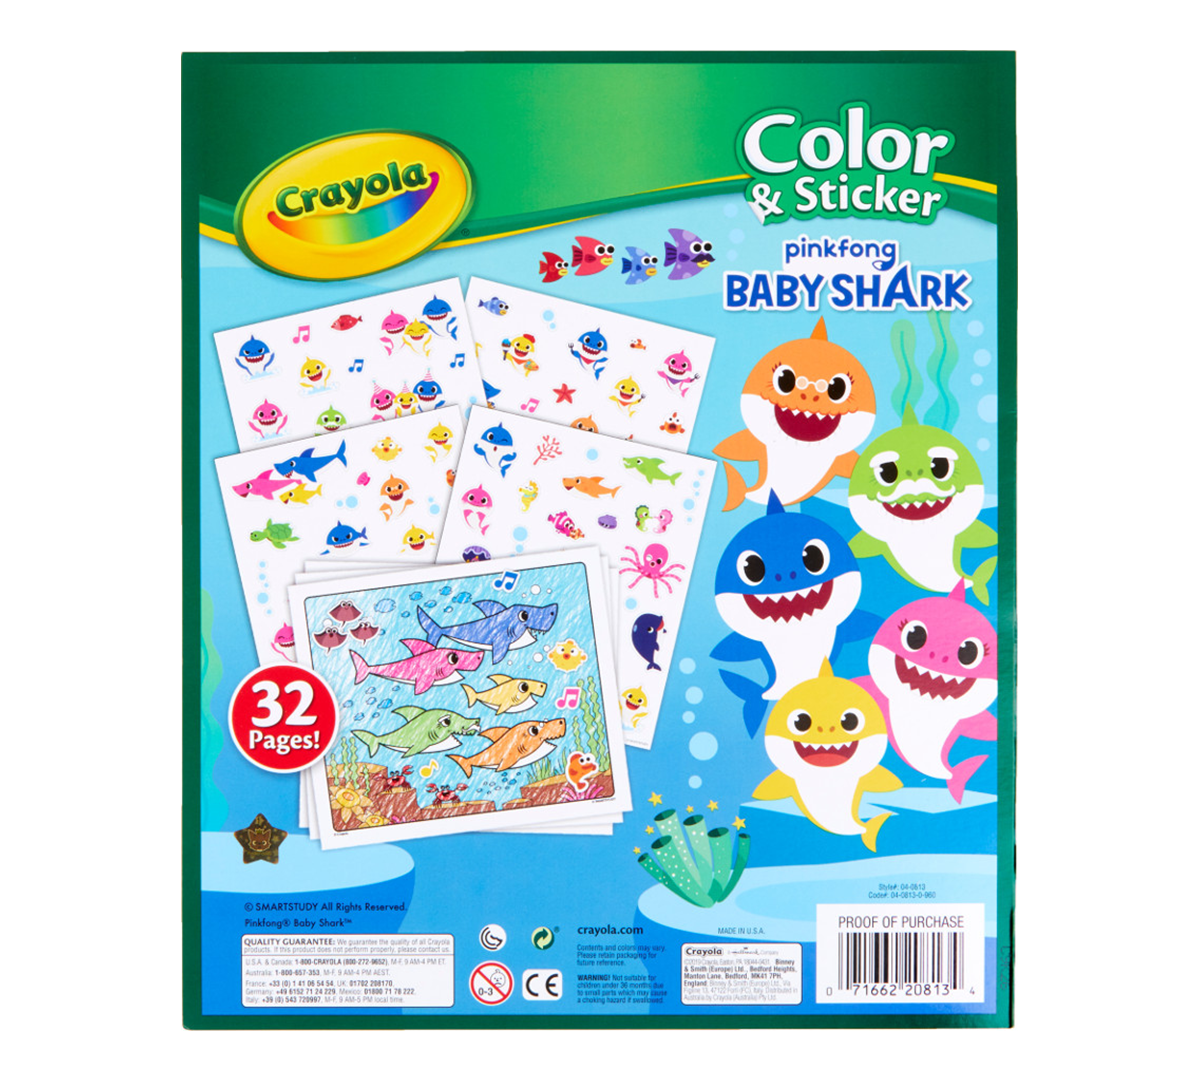 Crayola Baby Shark Coloring Pages and Stickers | Crayola ...